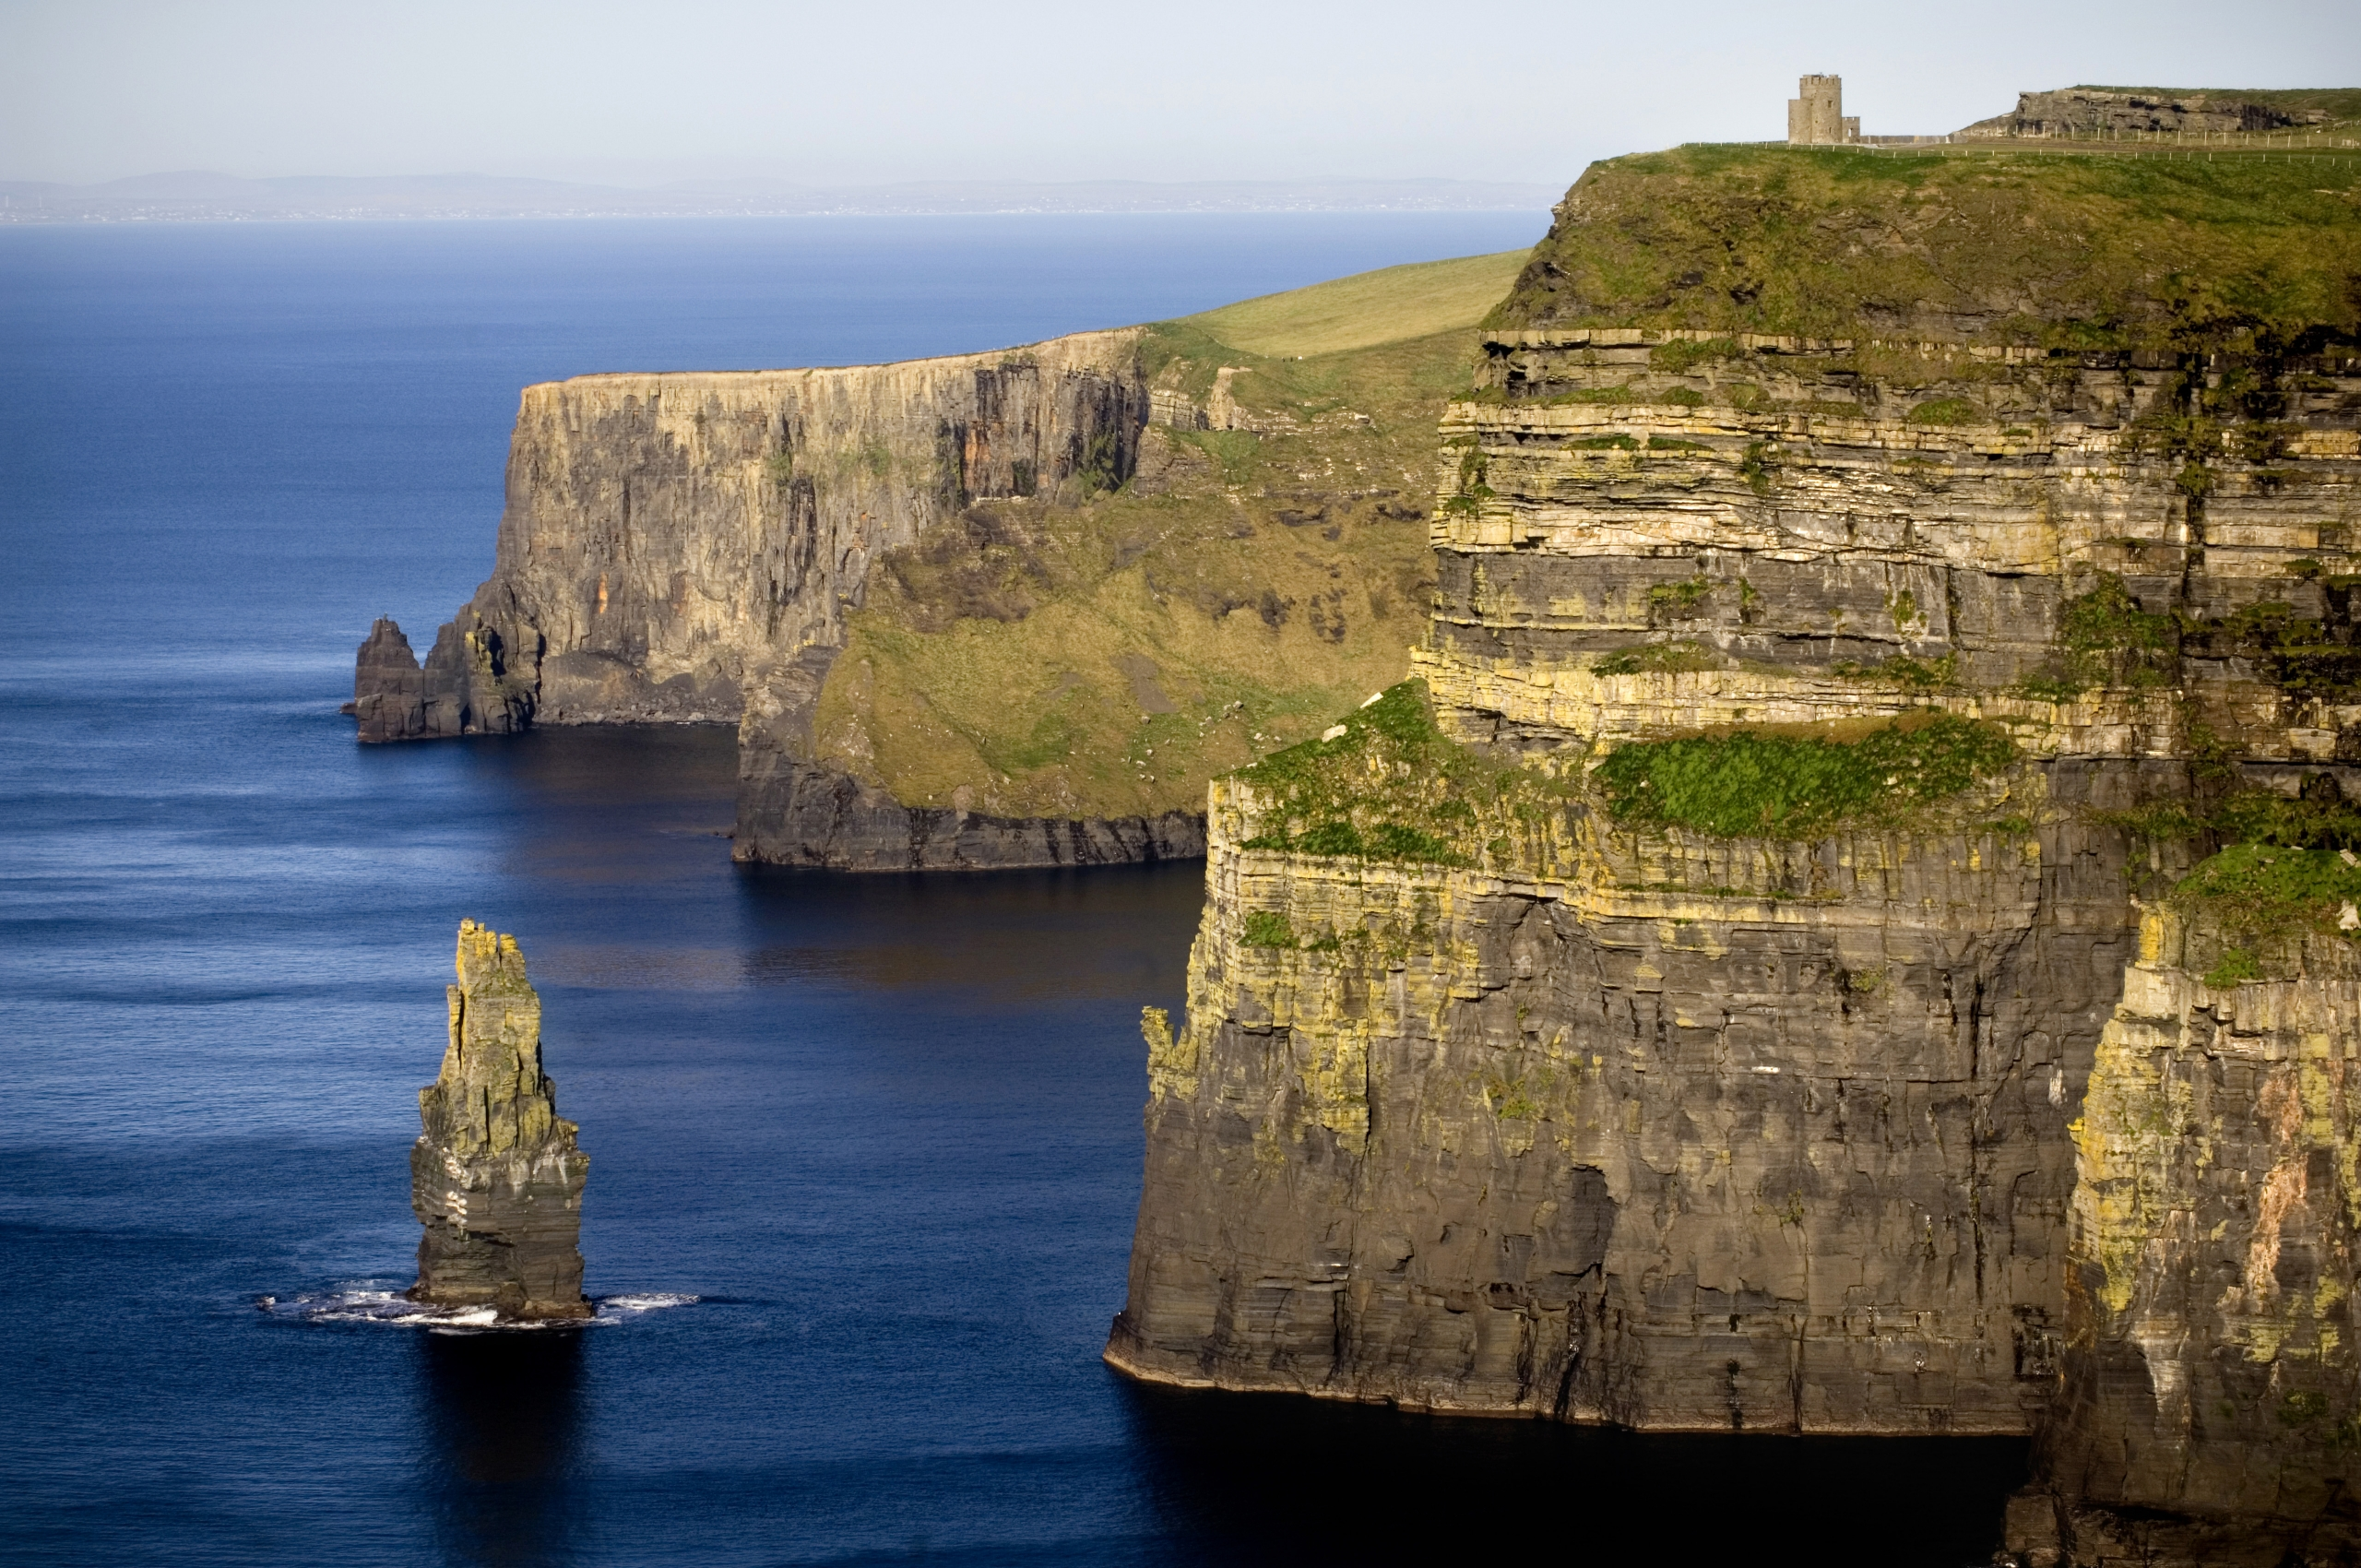 Cliffs of moher day tour from cork discovering cork - Cliffs of moher pictures ...